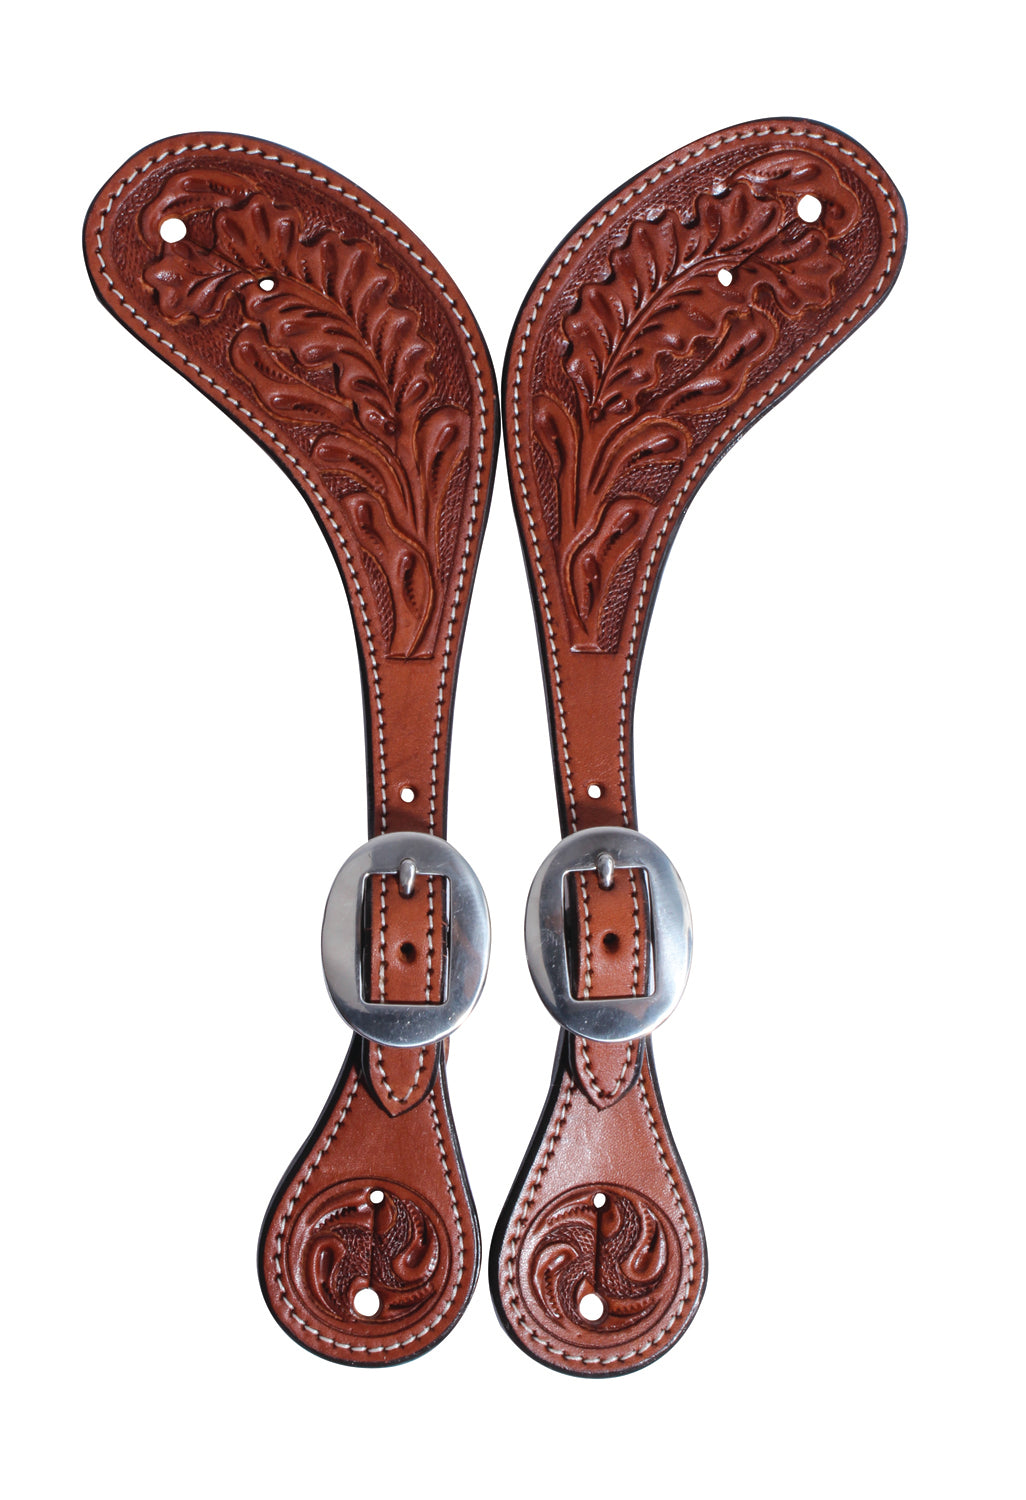 Pard's Western Shop Professional's Choice Collection Oak Leaf Tooled Muleshoe Spur Straps for Women